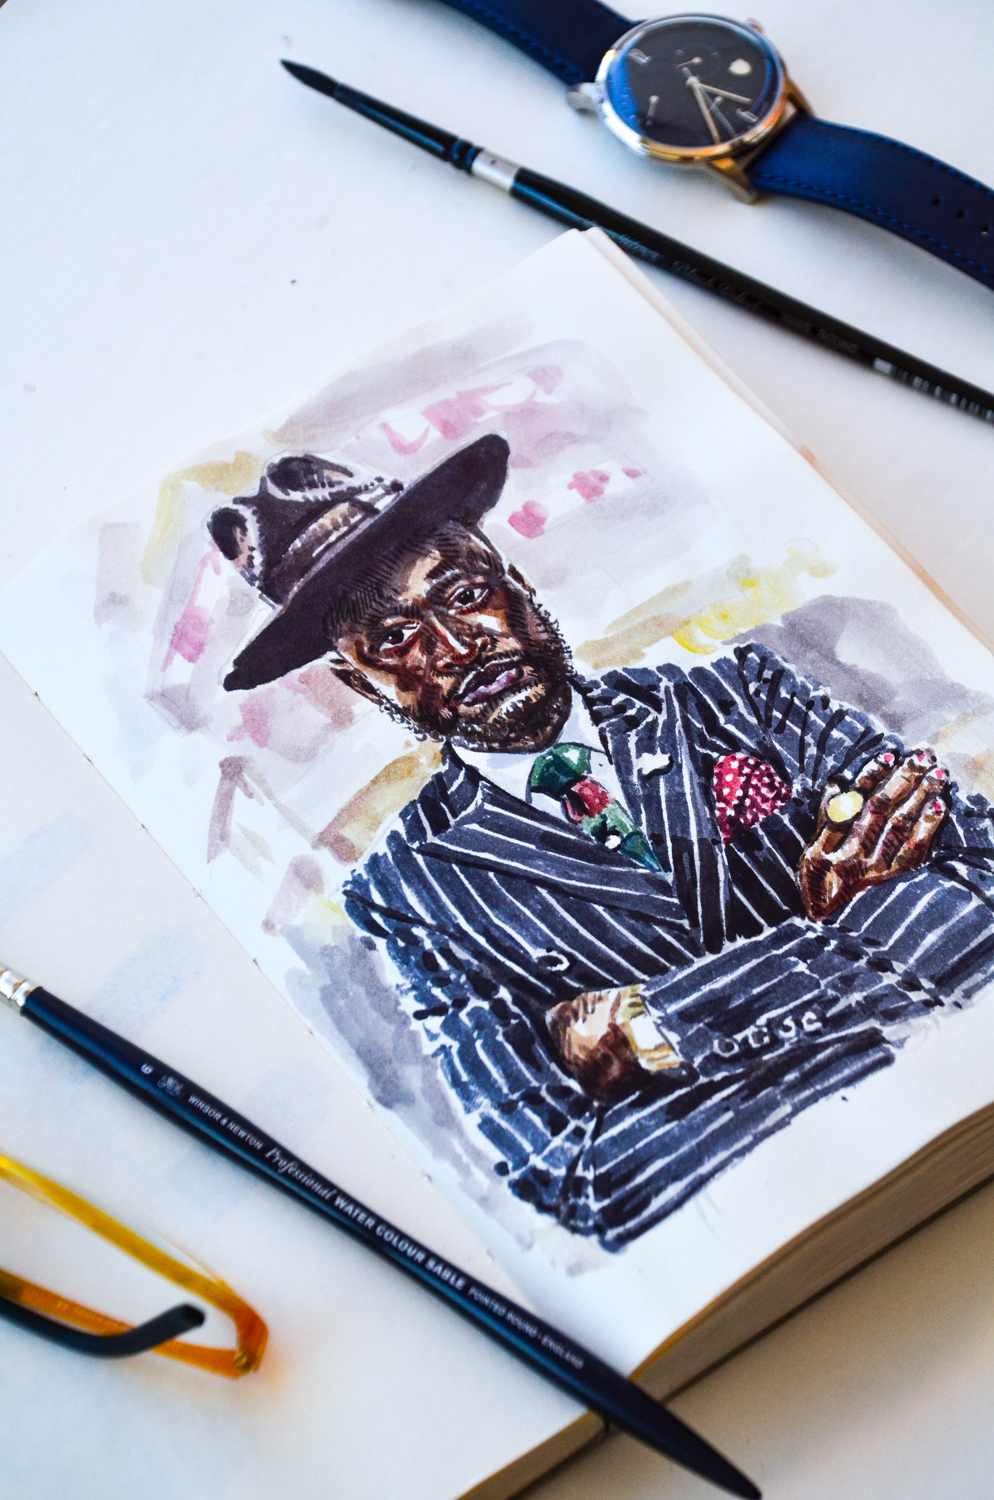 Fashion Illustration of Lourens Gebhardt in the Sunflowerman studio